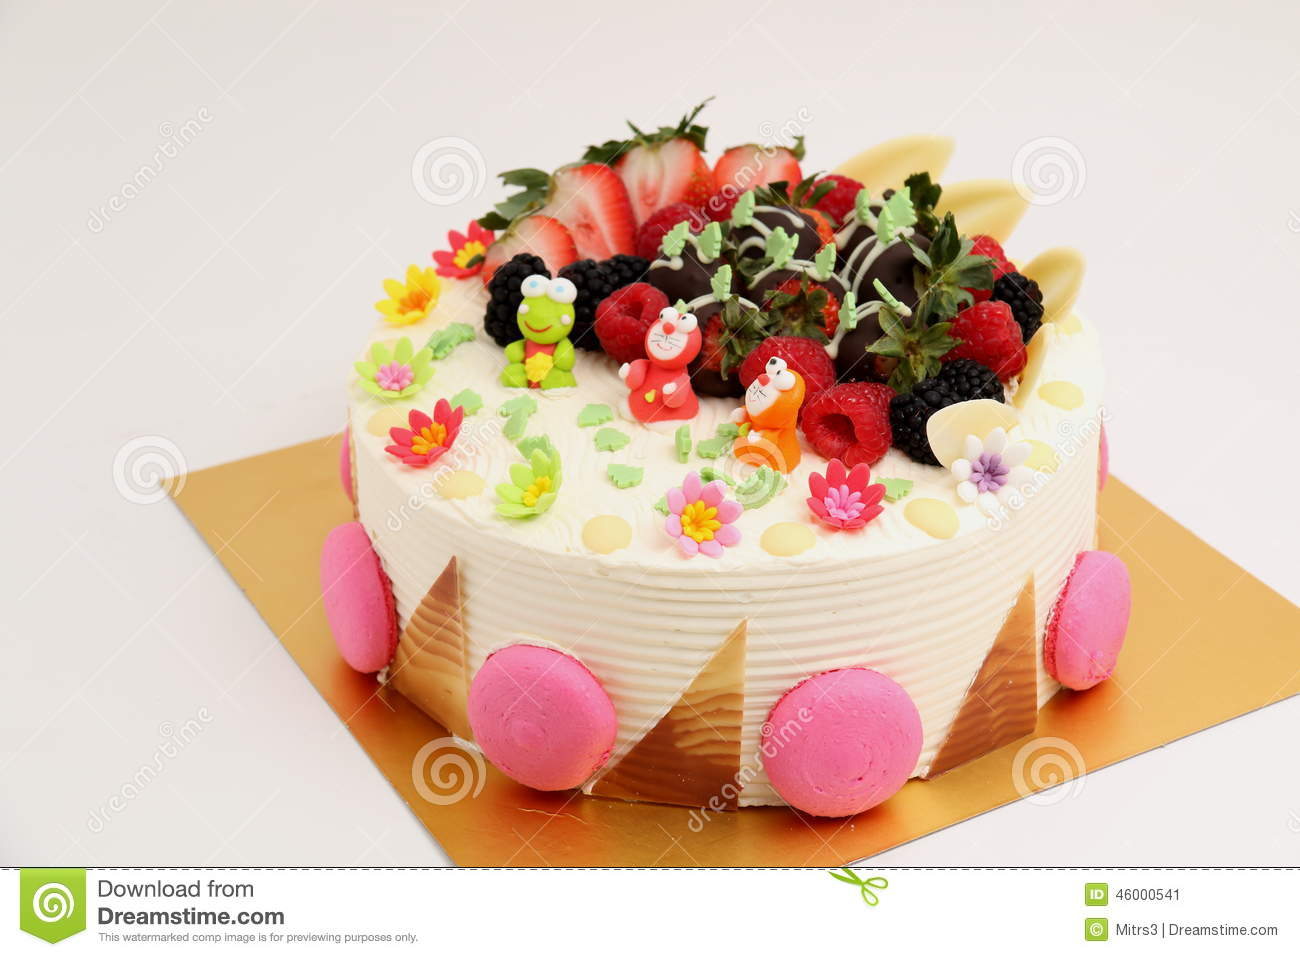 How To Decorate A Cake With Fresh Fruit